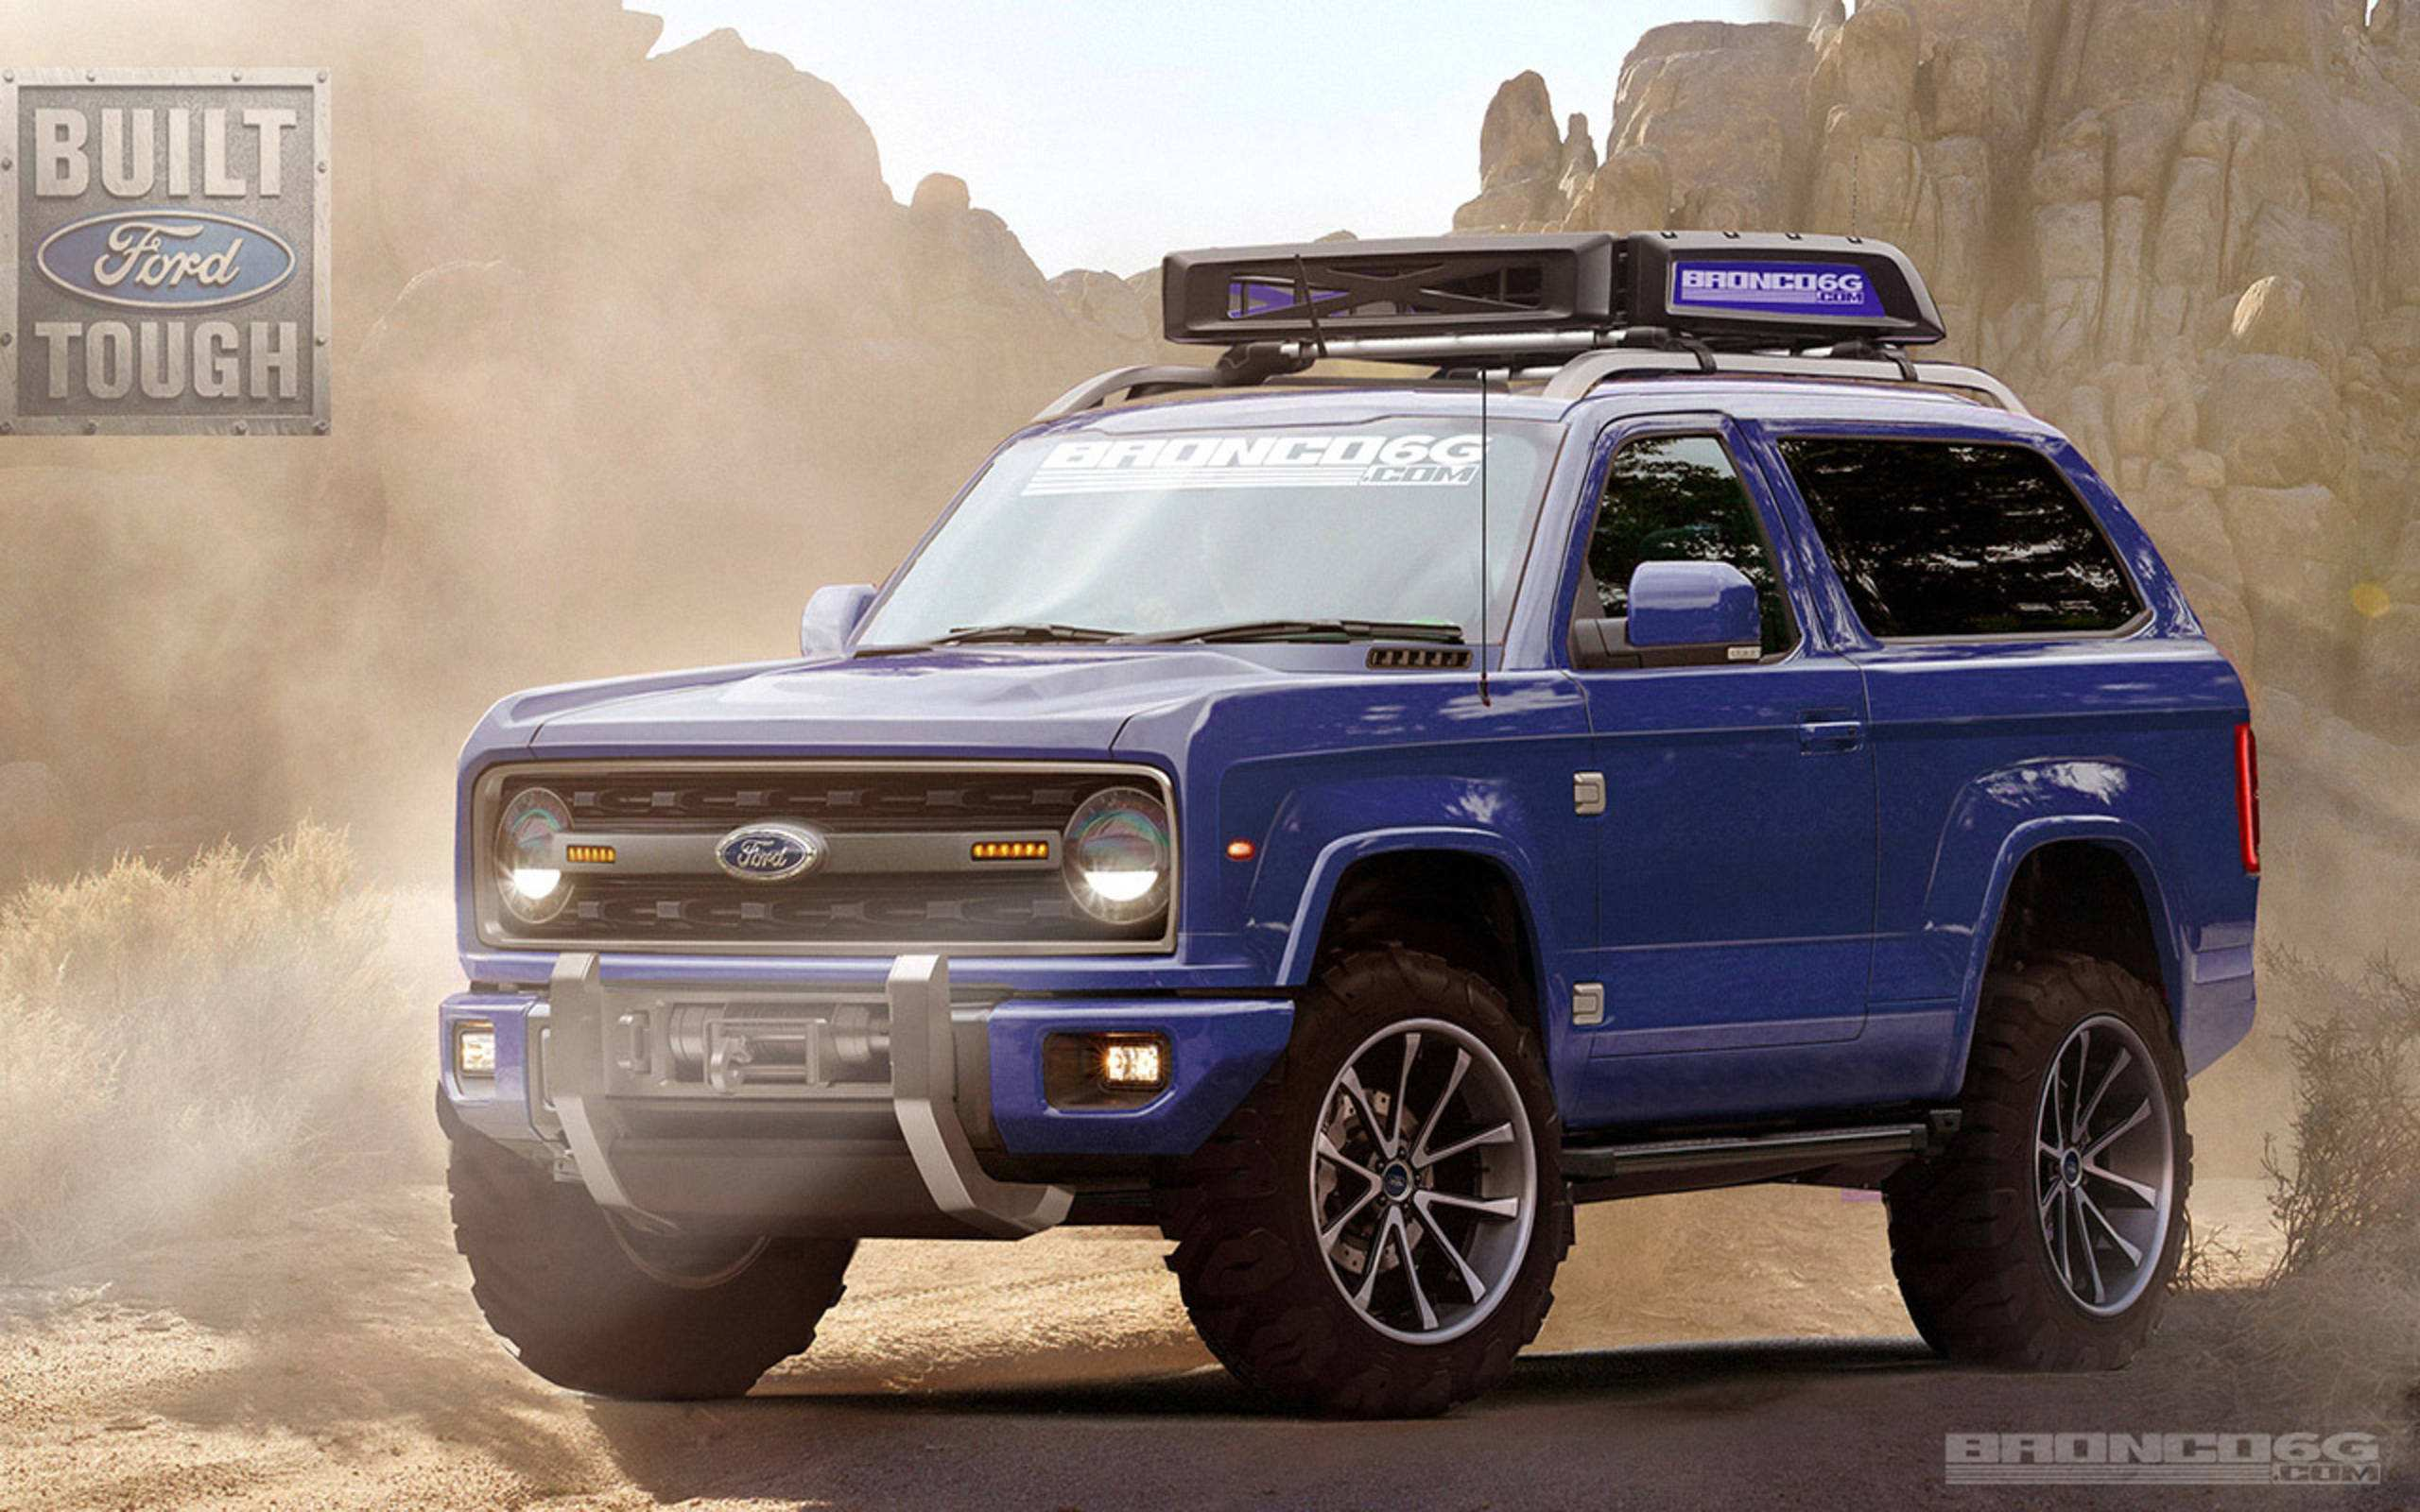 73 Great When Can You Buy A 2020 Ford Bronco First Drive for When Can You Buy A 2020 Ford Bronco